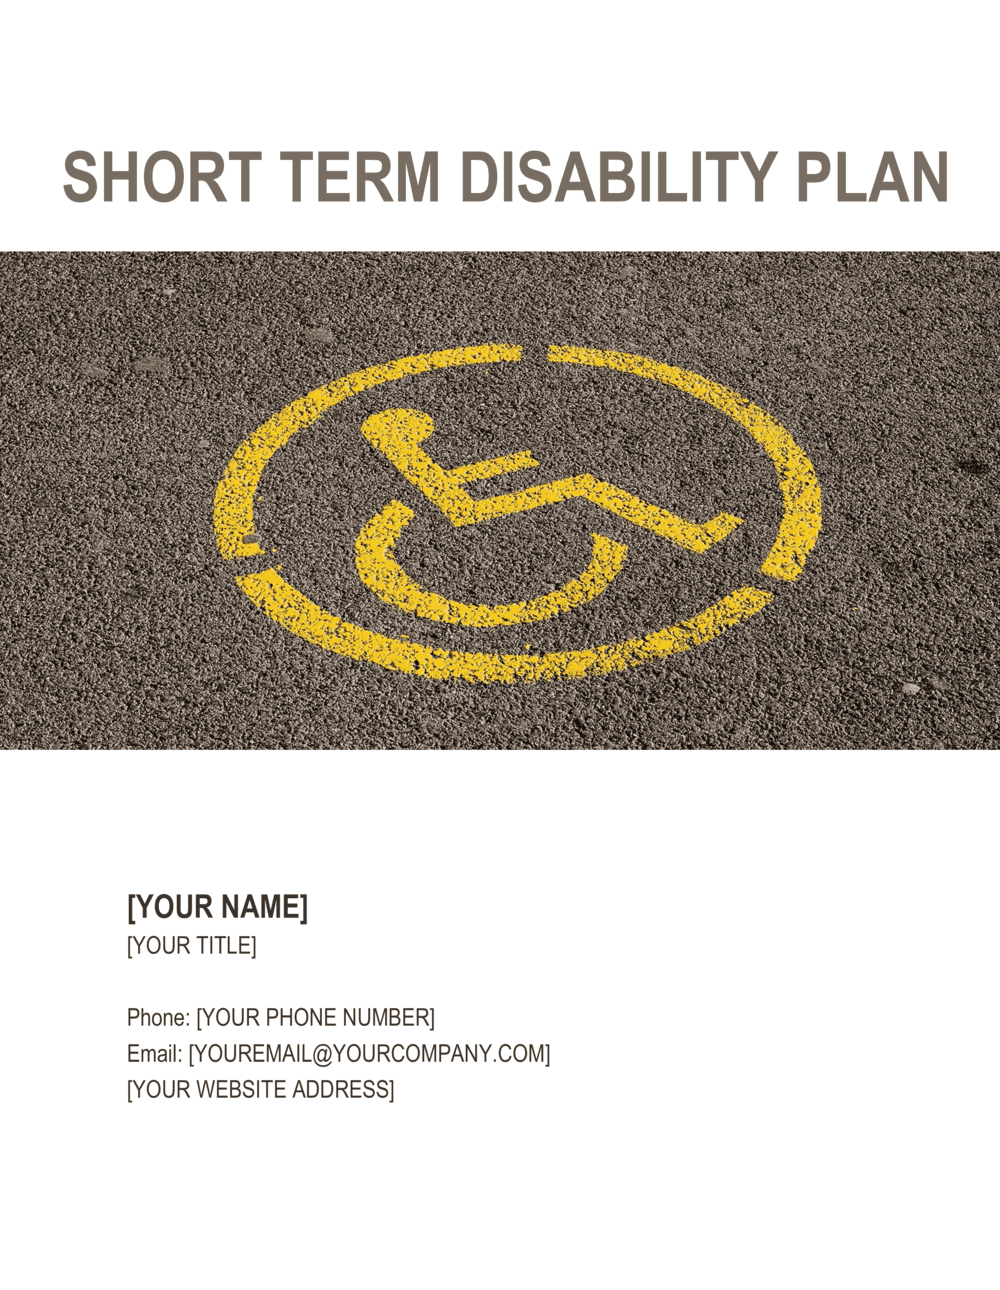 Business-in-a-Box's Disability Plan Short-Term Template